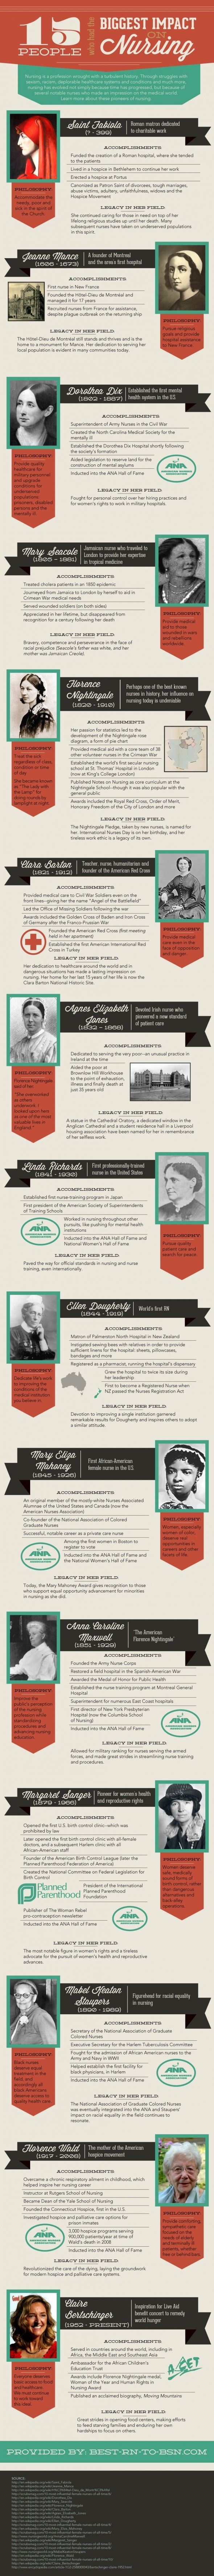 Infographic: 15 People Who Had the Biggest Impact on Nursing